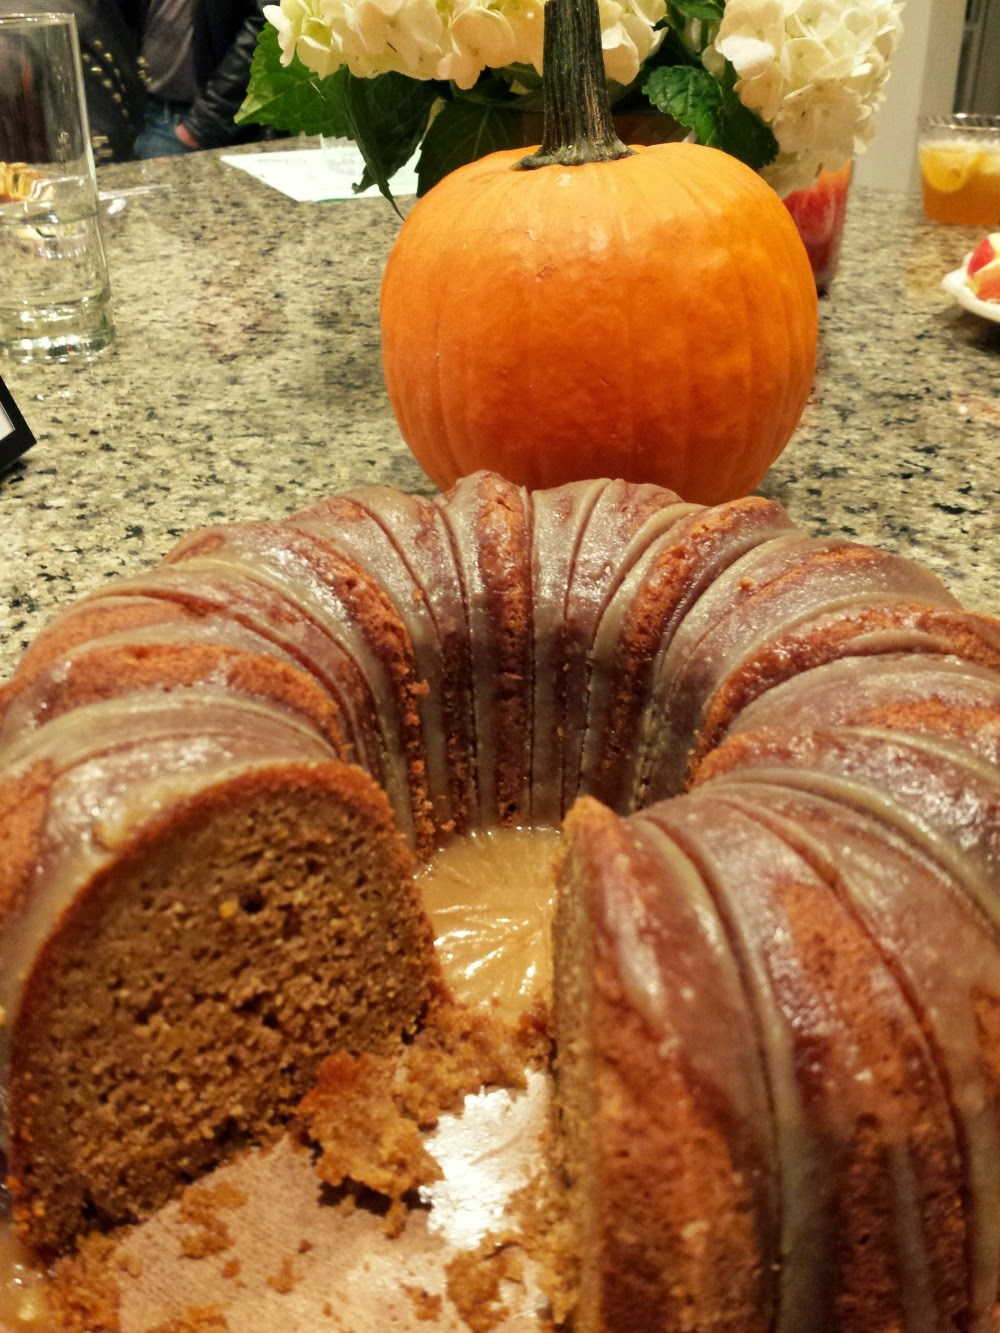 Pumpkin cake made from Papa Spud's pumpkins in farm to fork delivery service